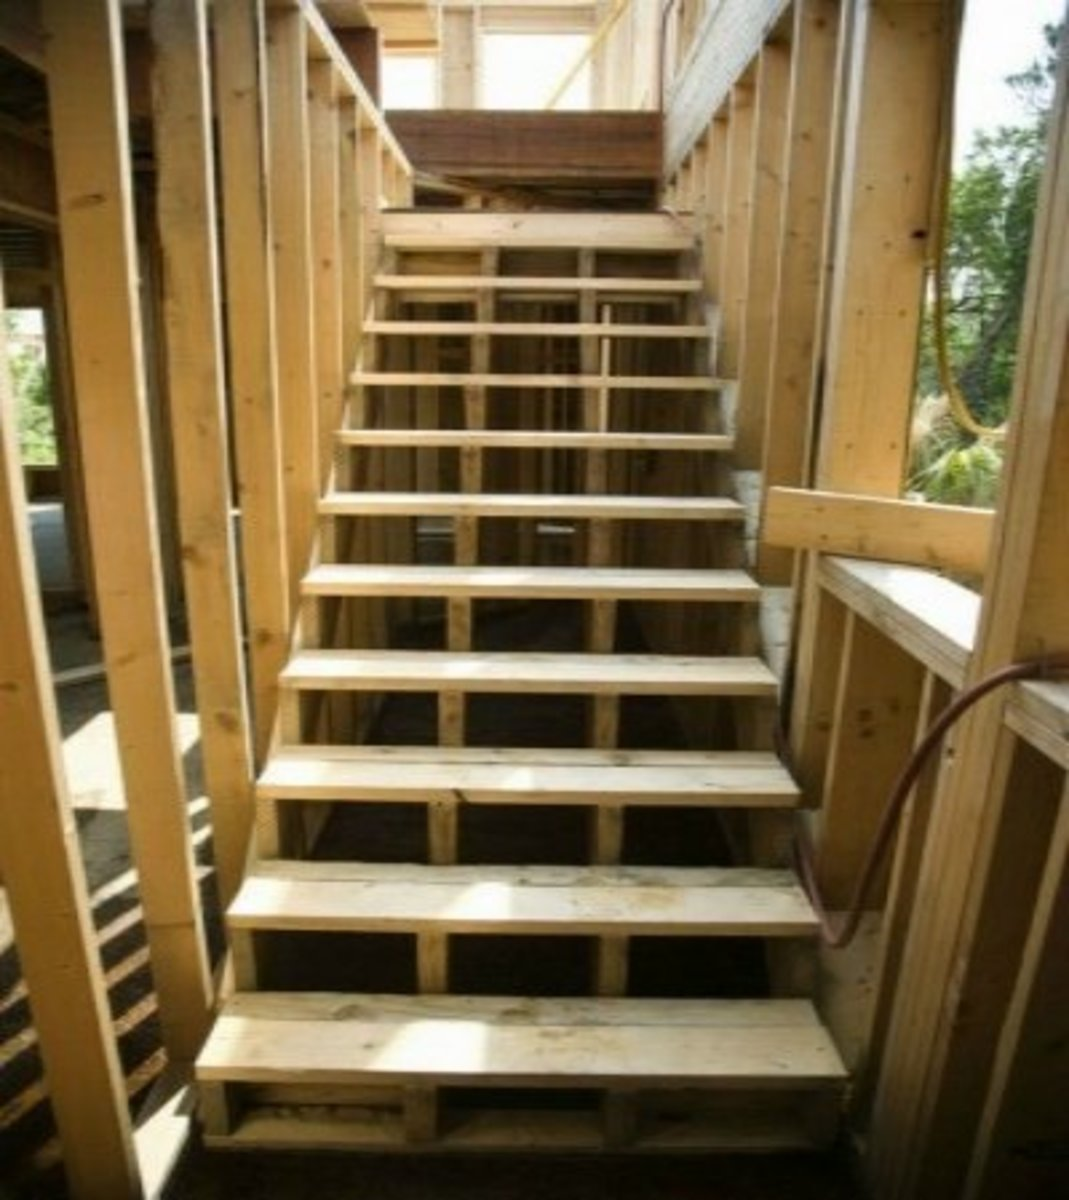 How to measure and build stairs